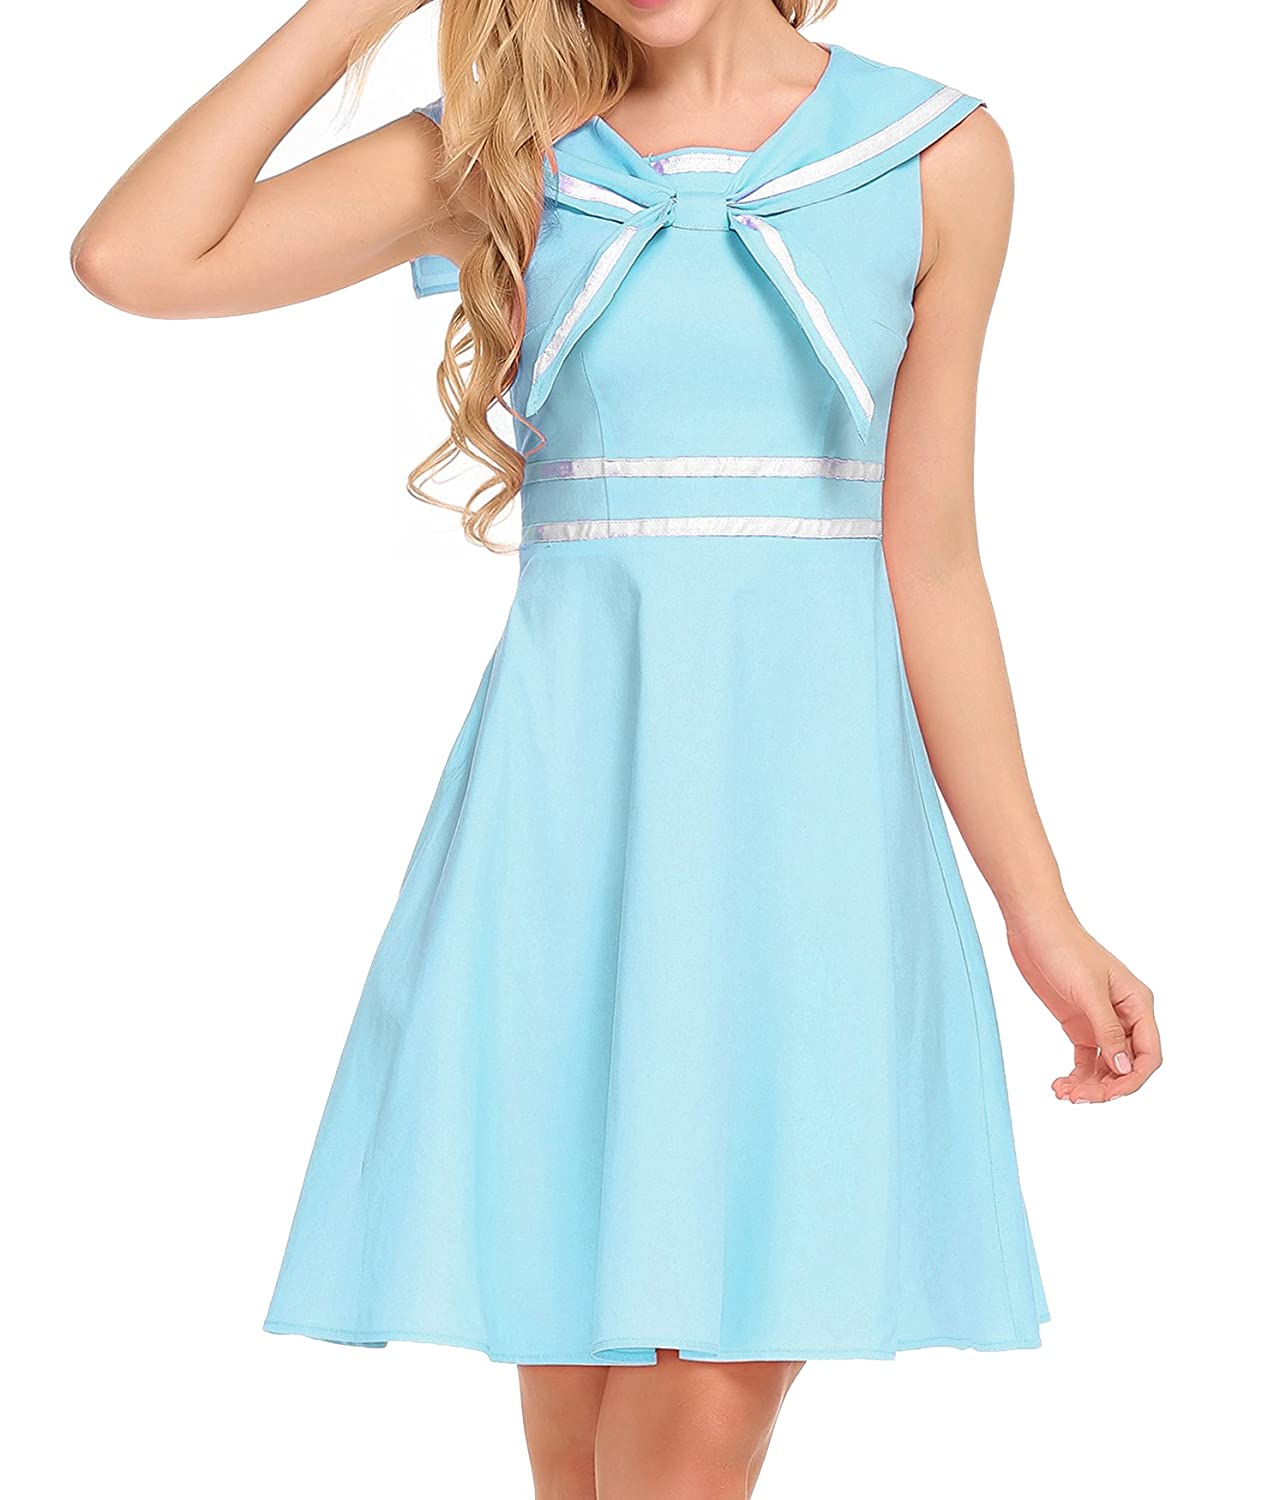 Children Kids Flower Girls Dress Chiffon Sleeveless High-low Summer Casual Dress For Daily Holiday Party Beach Formal Dresses Fine Craftsmanship Flower Girl Dresses Weddings & Events